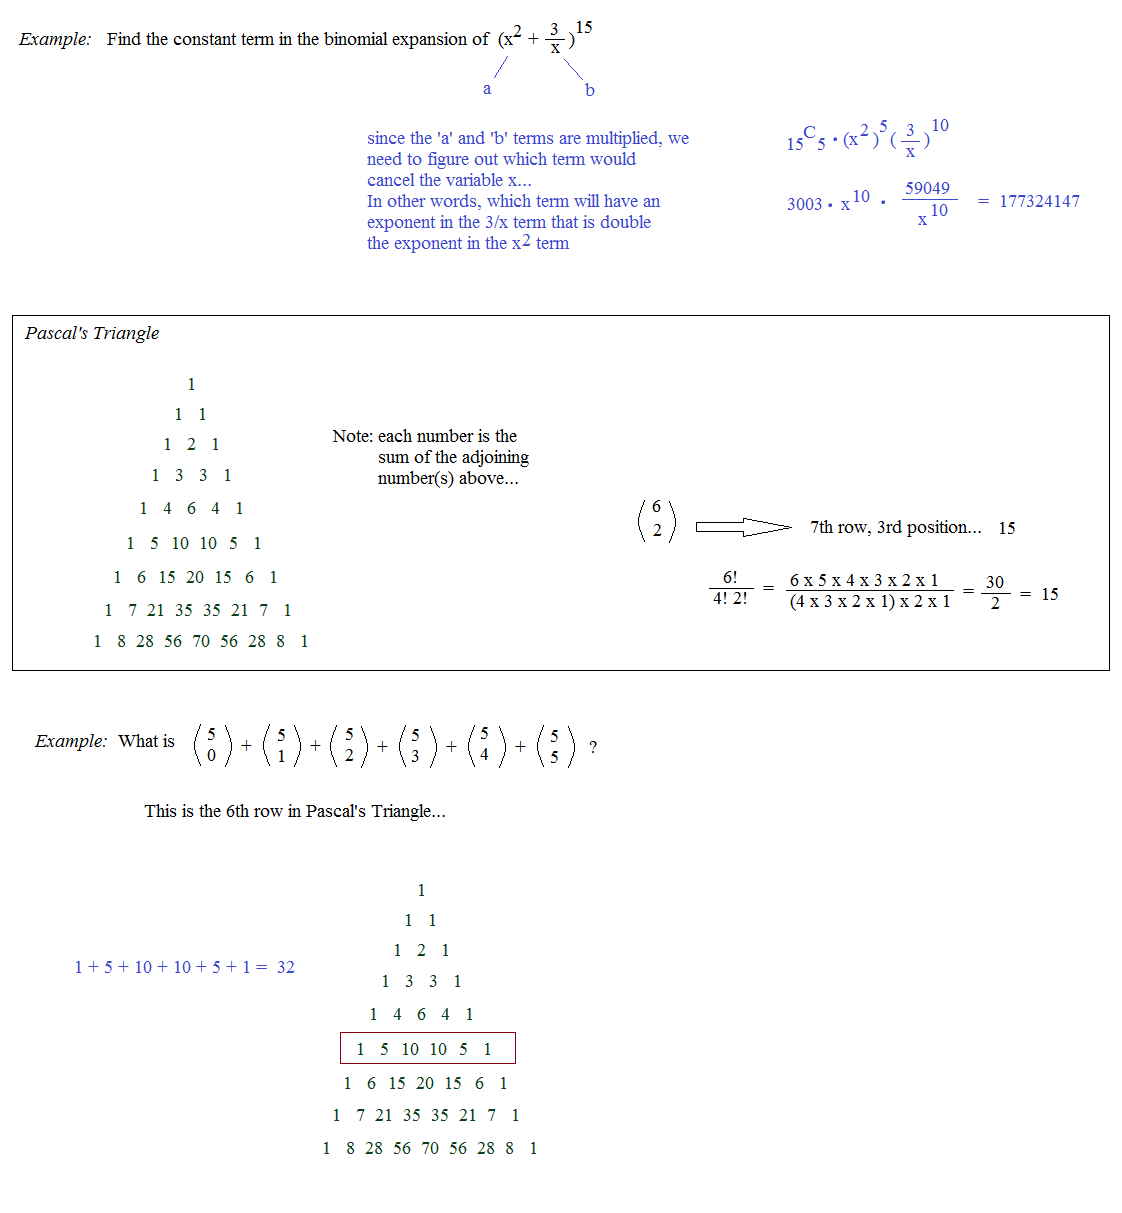 worksheet Binomial Expansion Worksheet math plane binomial expansion theorem pascals triangle